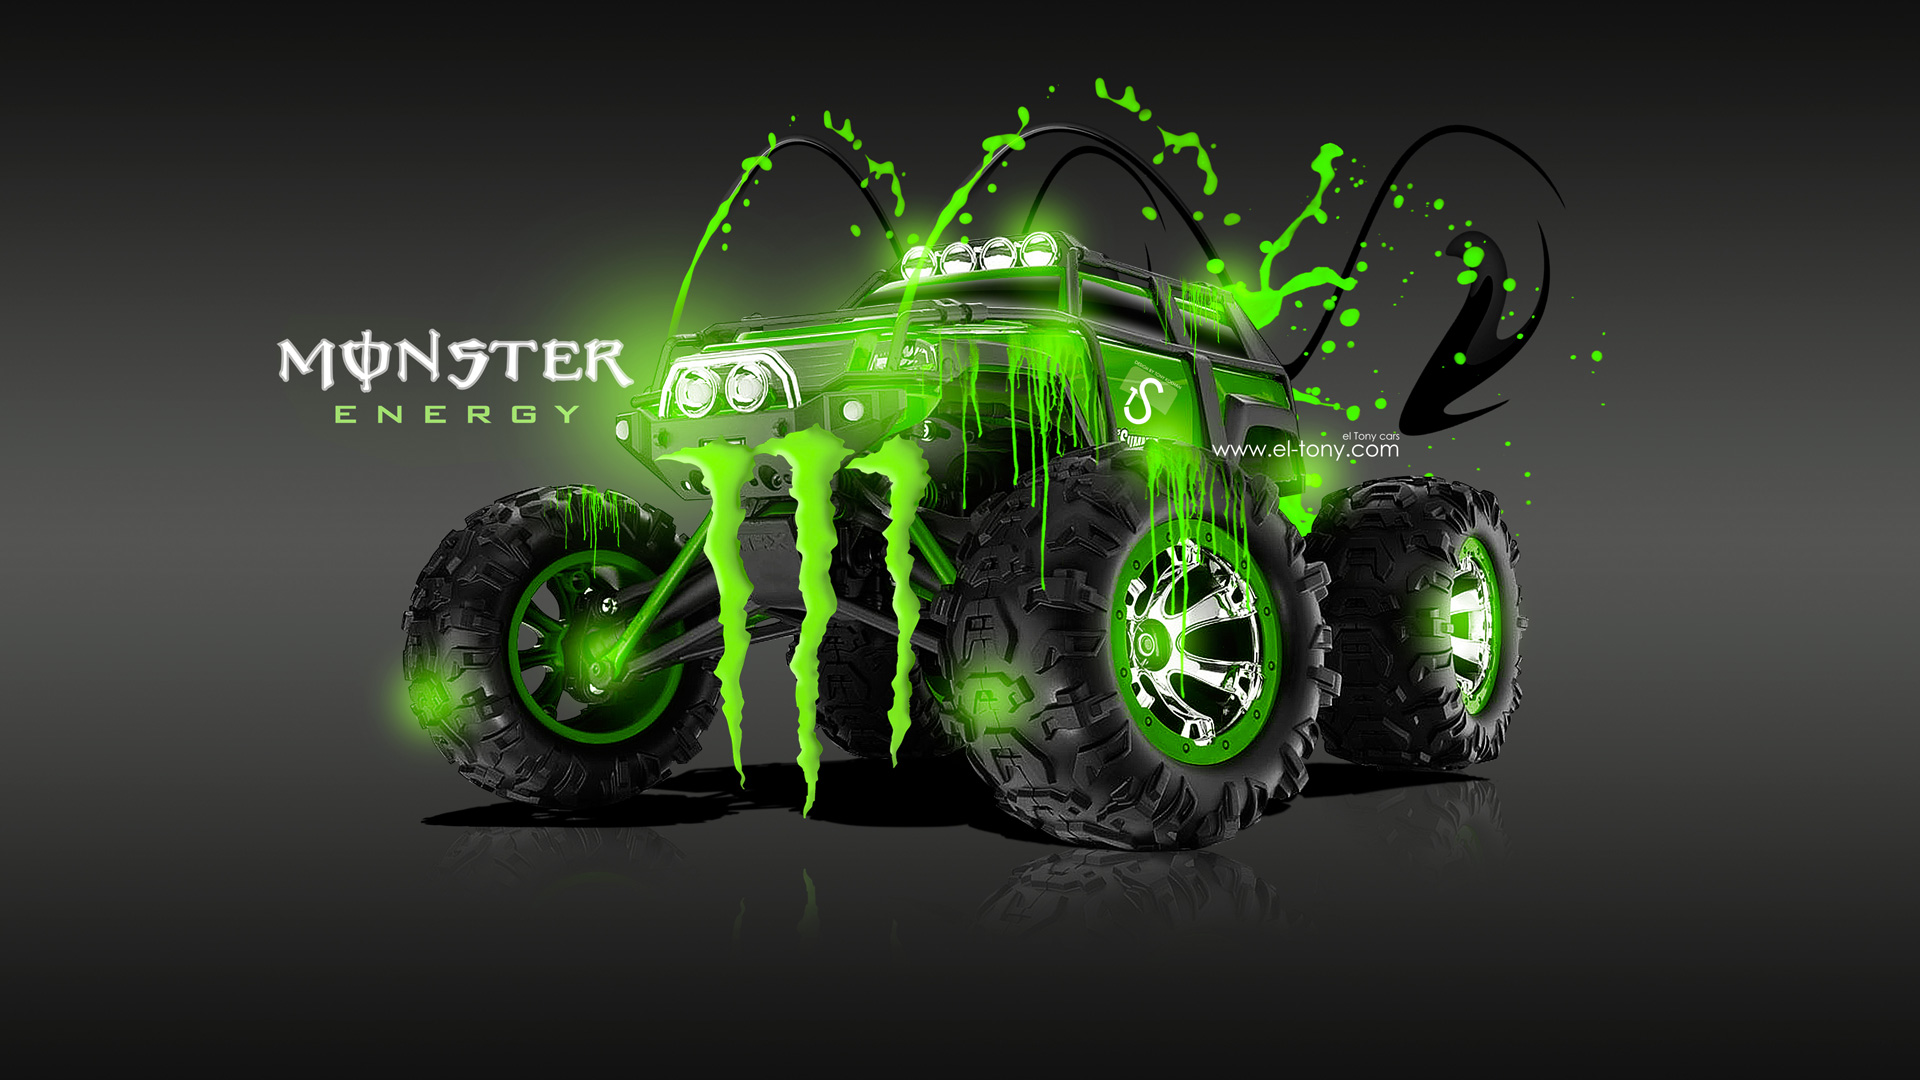 monster energy toyota soarer - photo #21